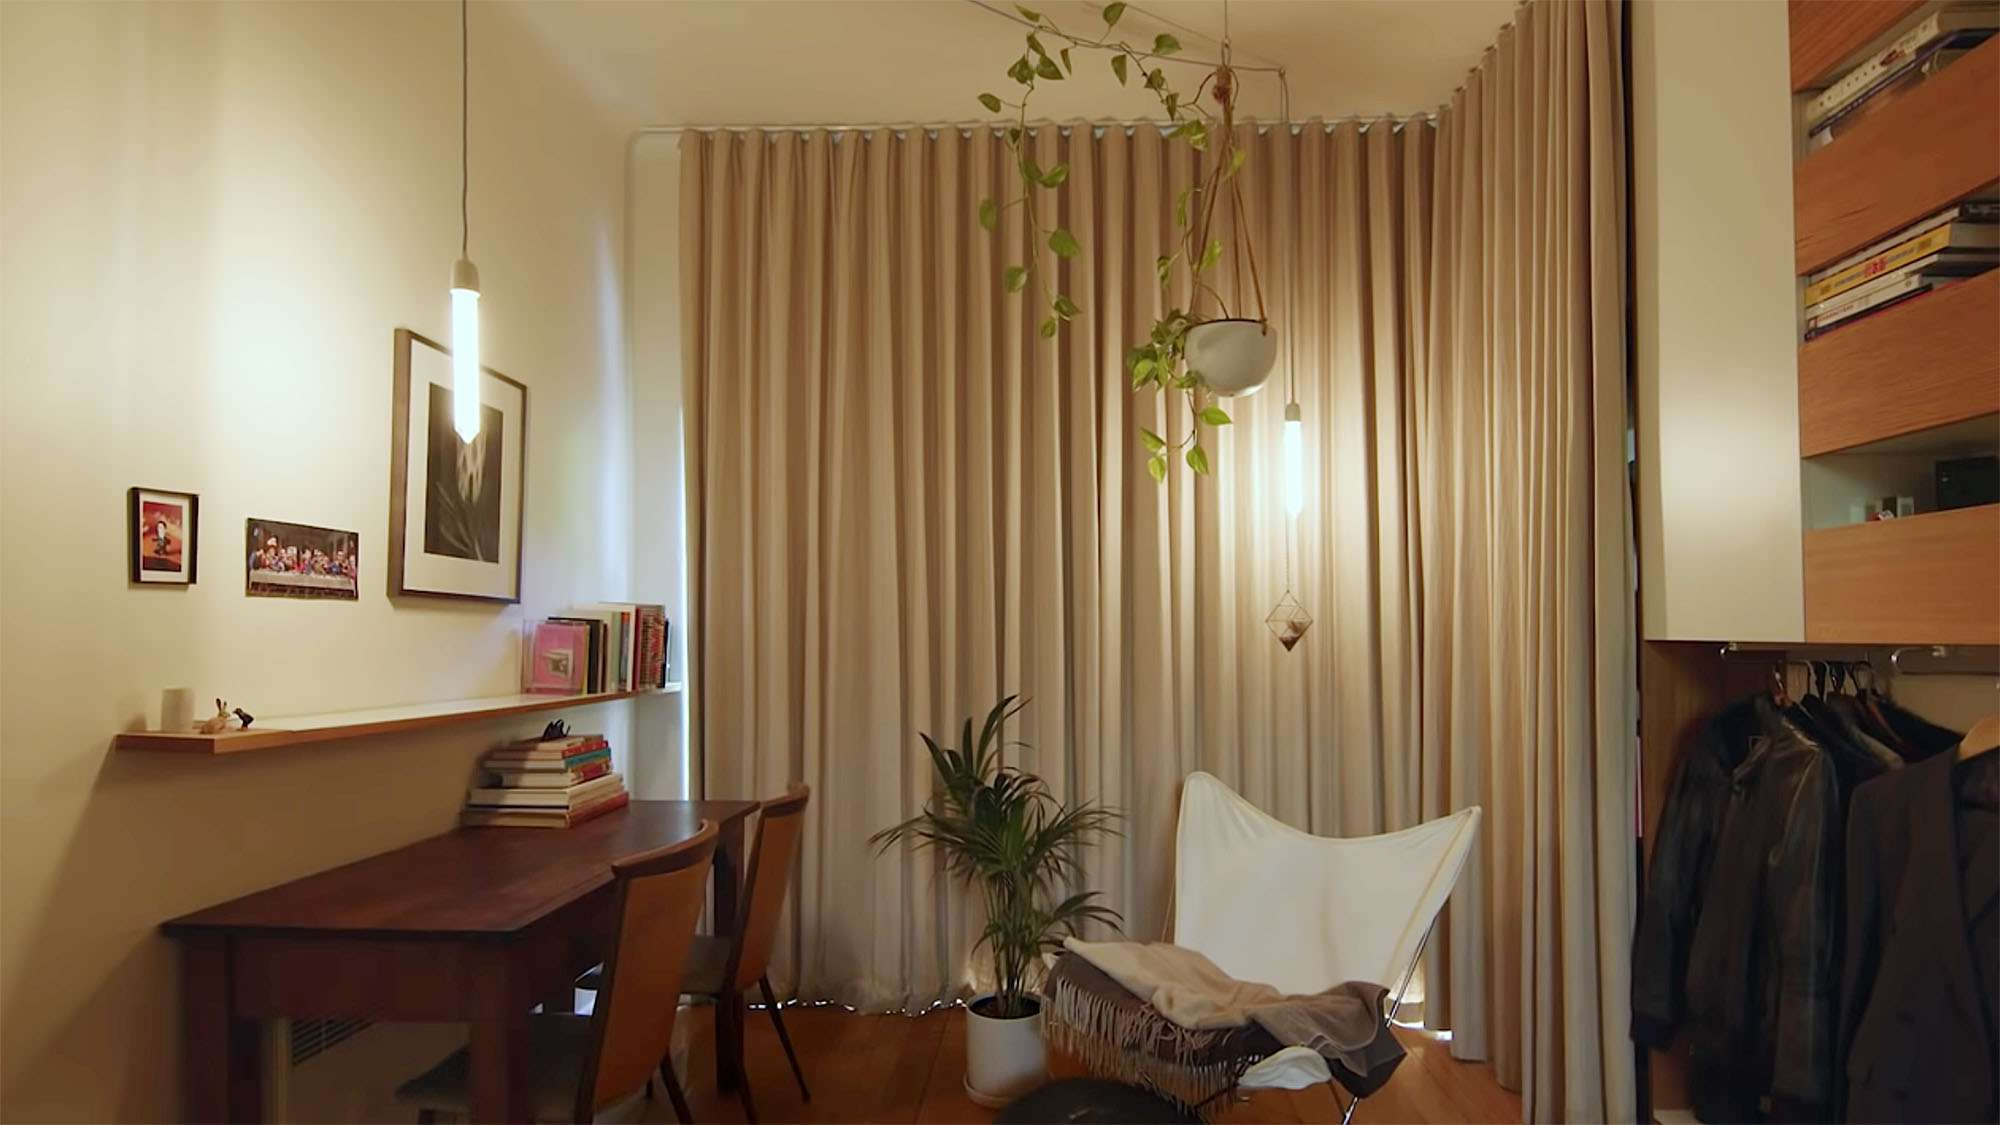 the purple rose of cairo micro-apartment renovation Architecture Architecture curtains closed